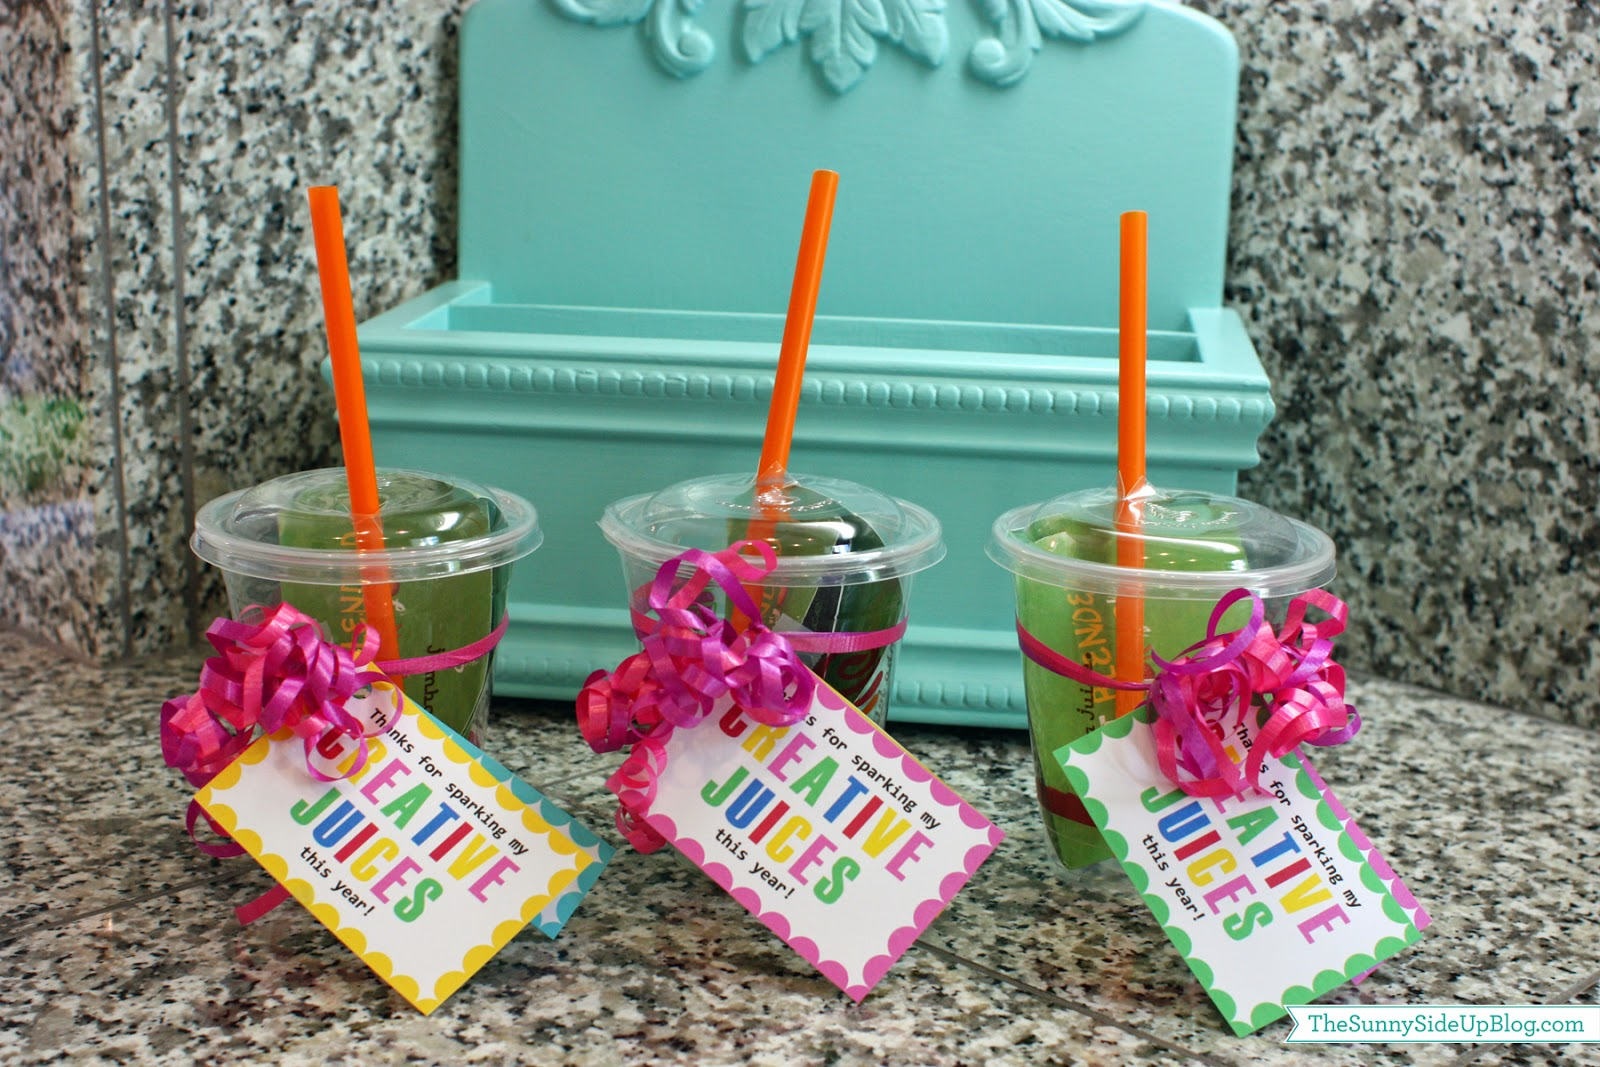 Teacher gift ideas the sunny side up blog last year we gave teachers a cup from jamba juice with a gift card inside of it i got the idea from tatertots and jello she also has the creative juices negle Gallery